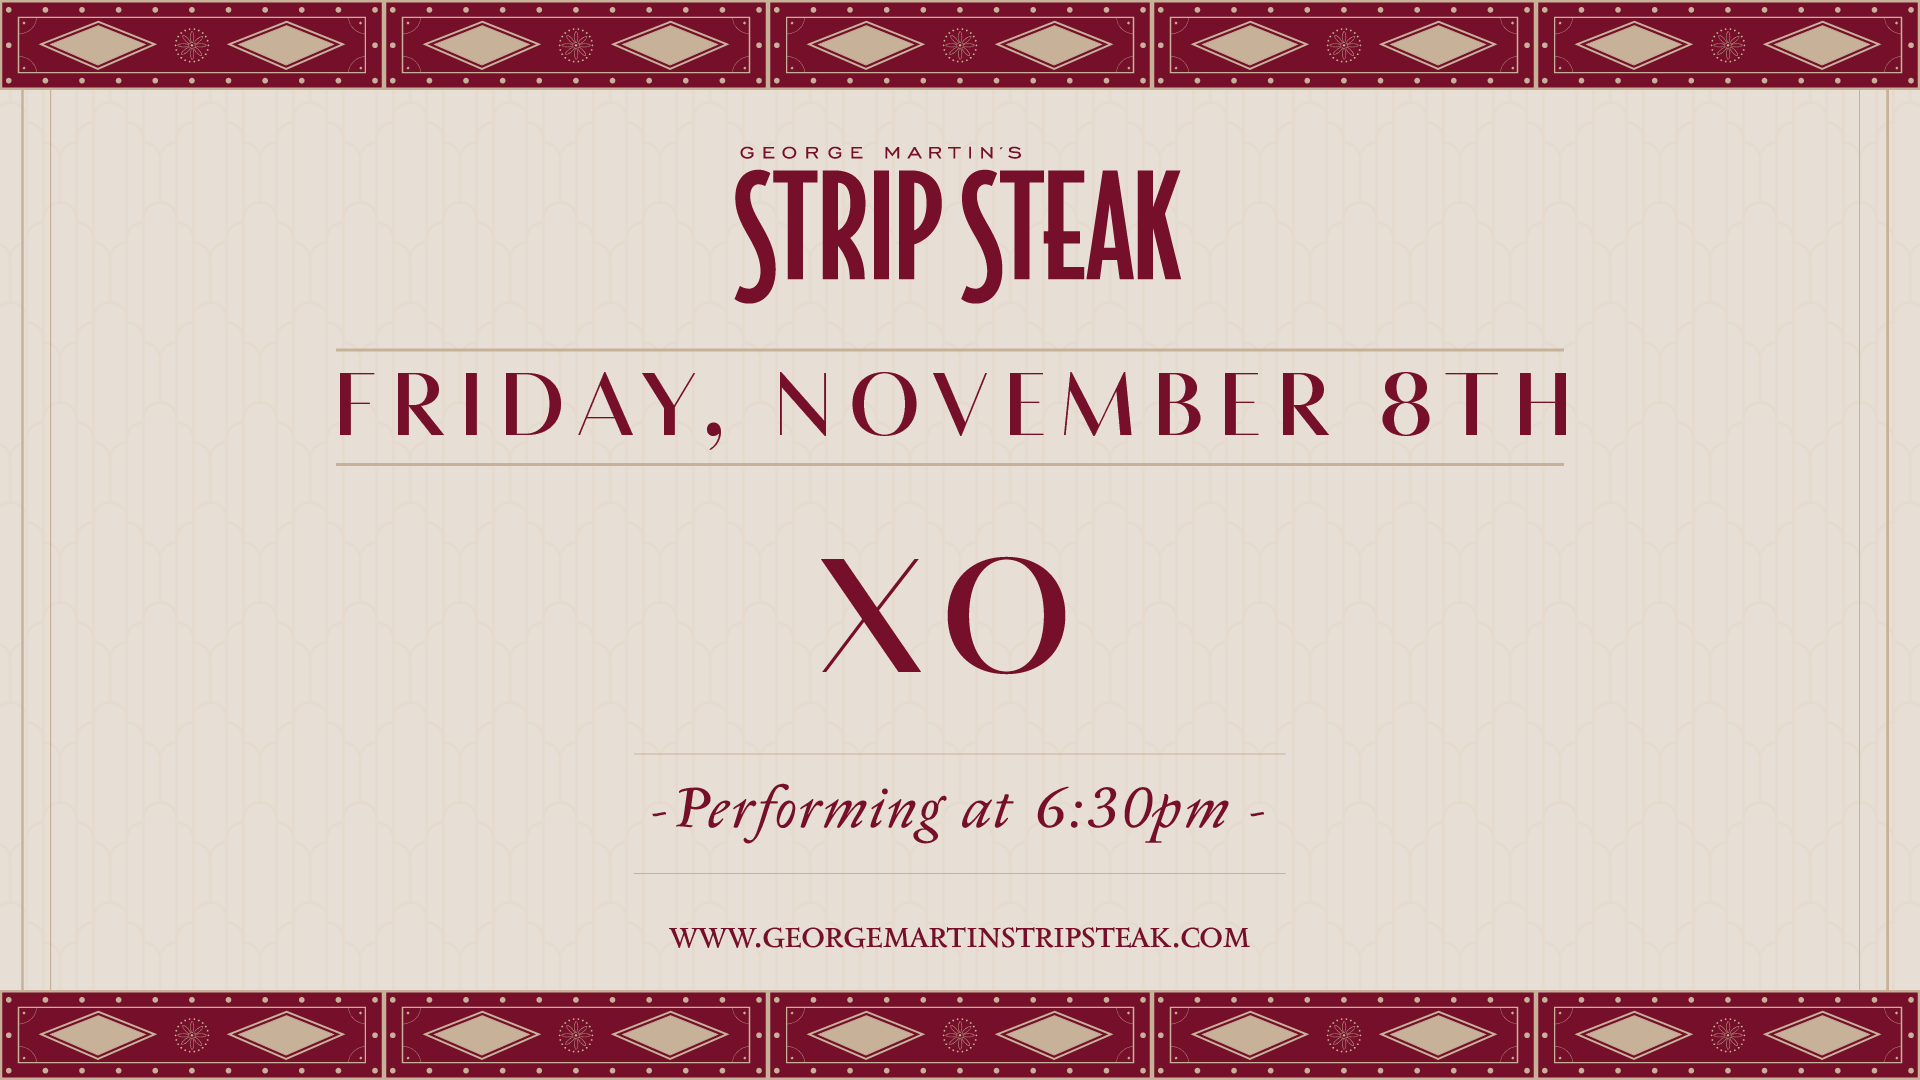 Flyer for Friday, November 8th with XO performing at 6:30pm.